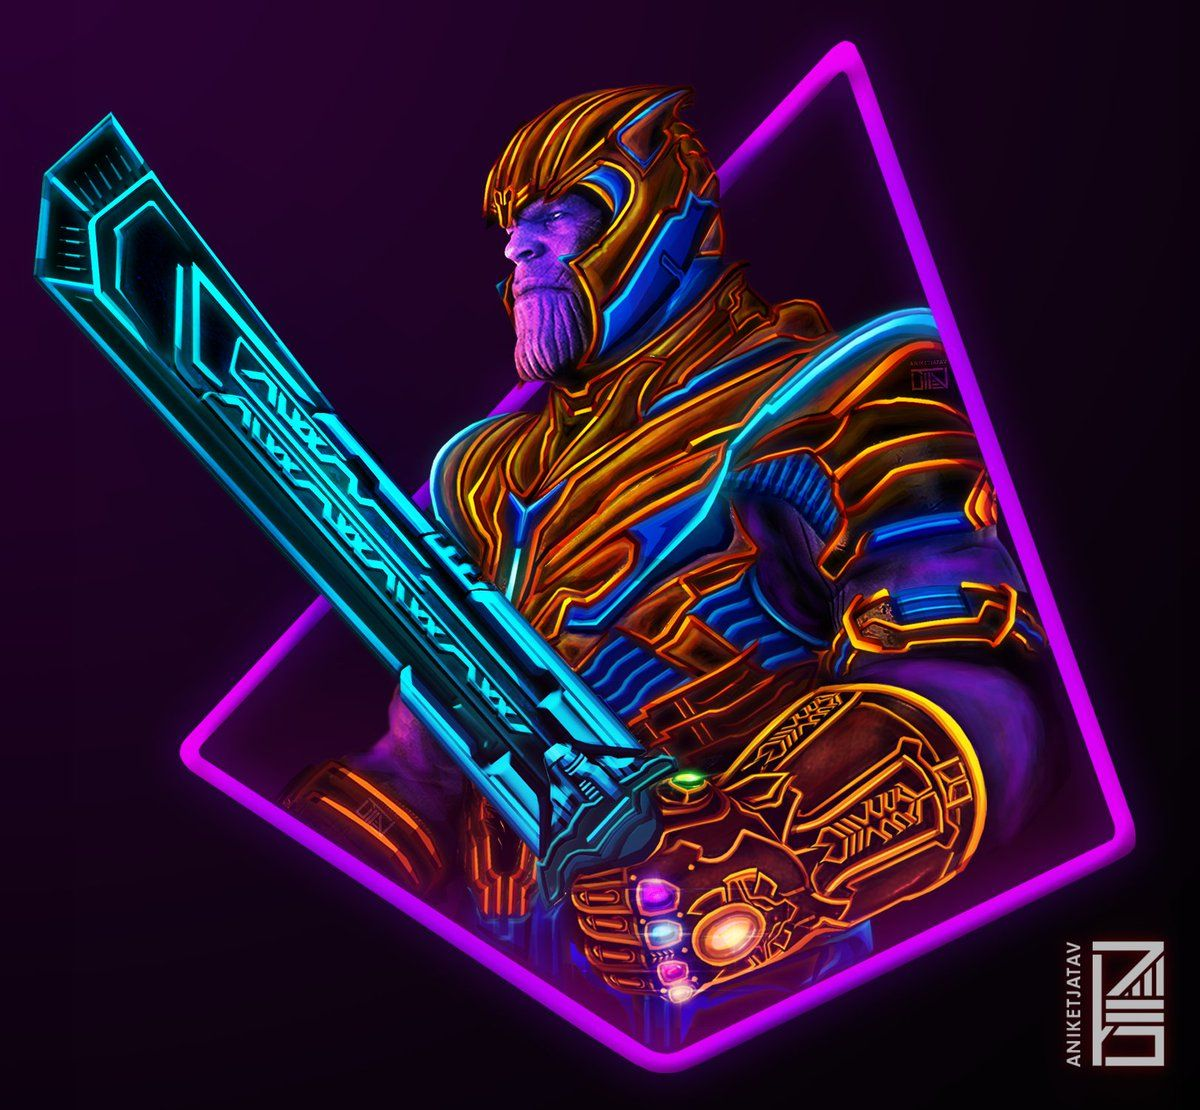 Thanos Neon Wallpapers - Wallpaper Cave